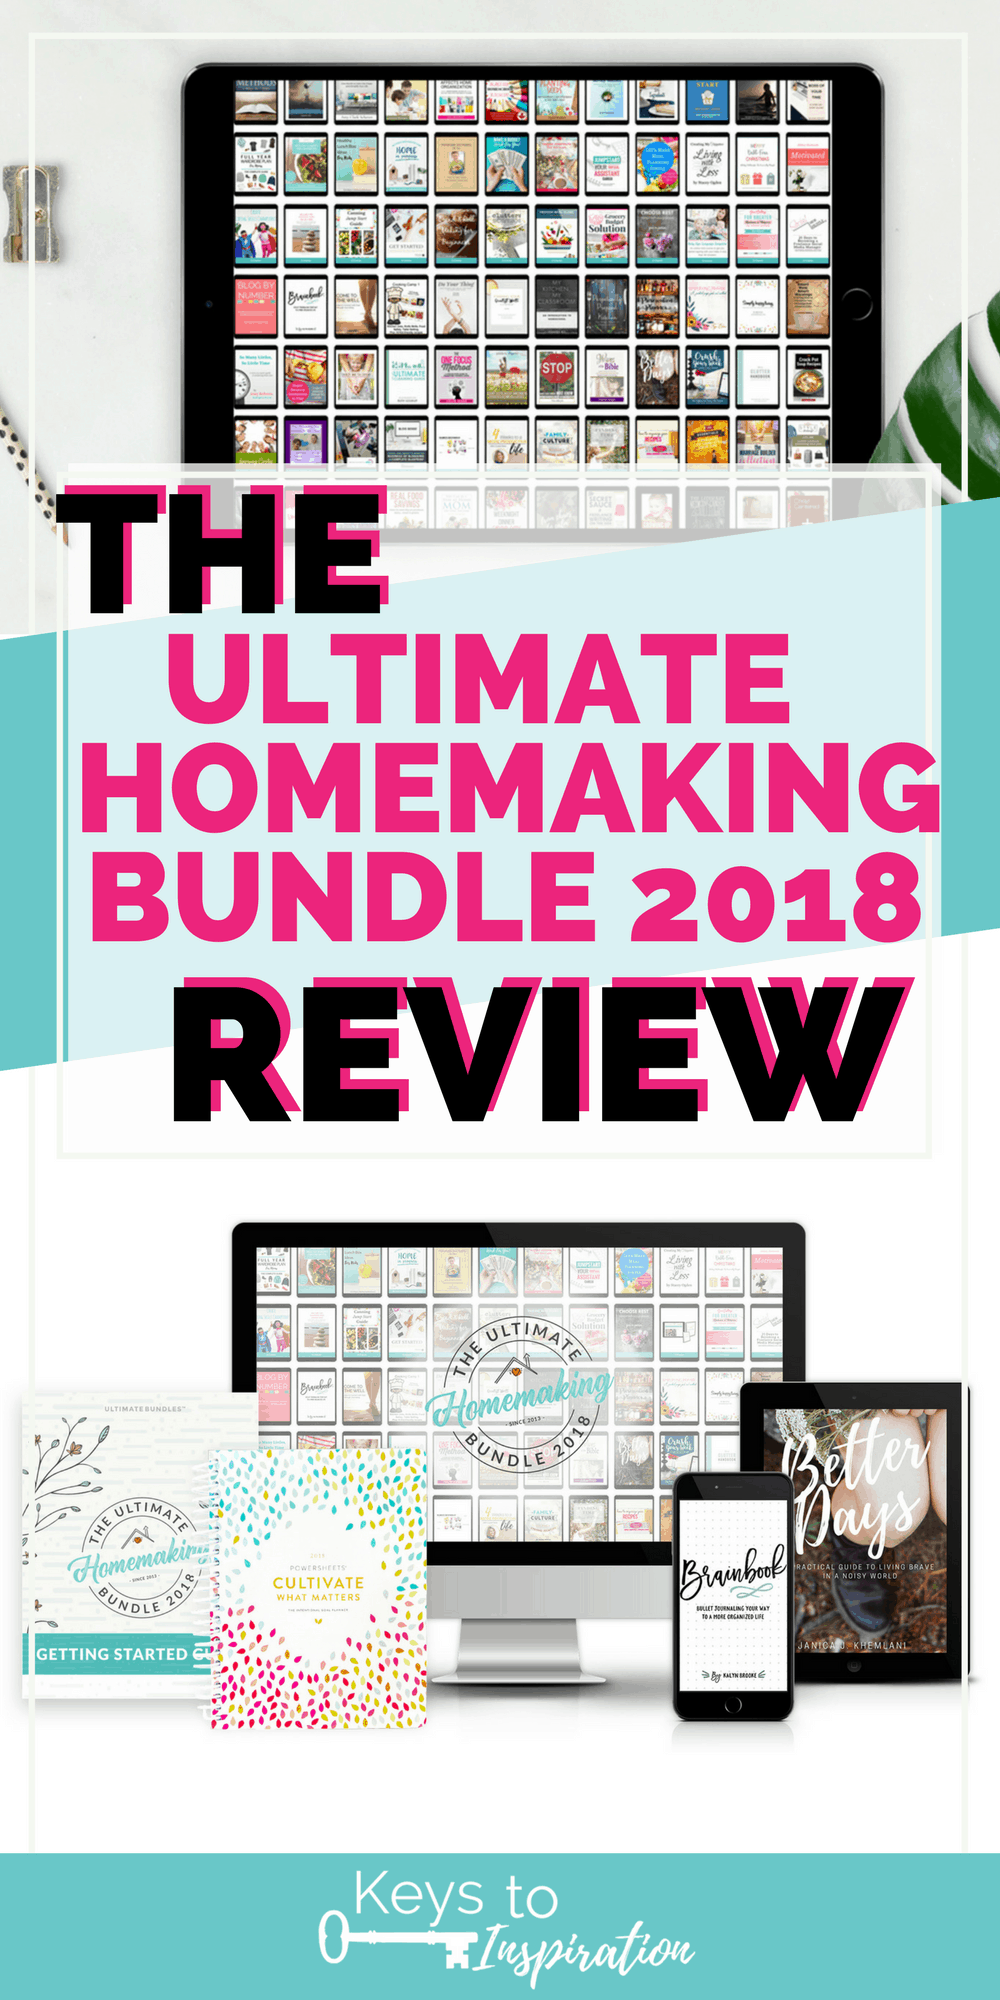 A review of the Ultimate Homemaking Bundle 2018. Learn all about the bundle, what's included, my favorite resources, and your questions answered.